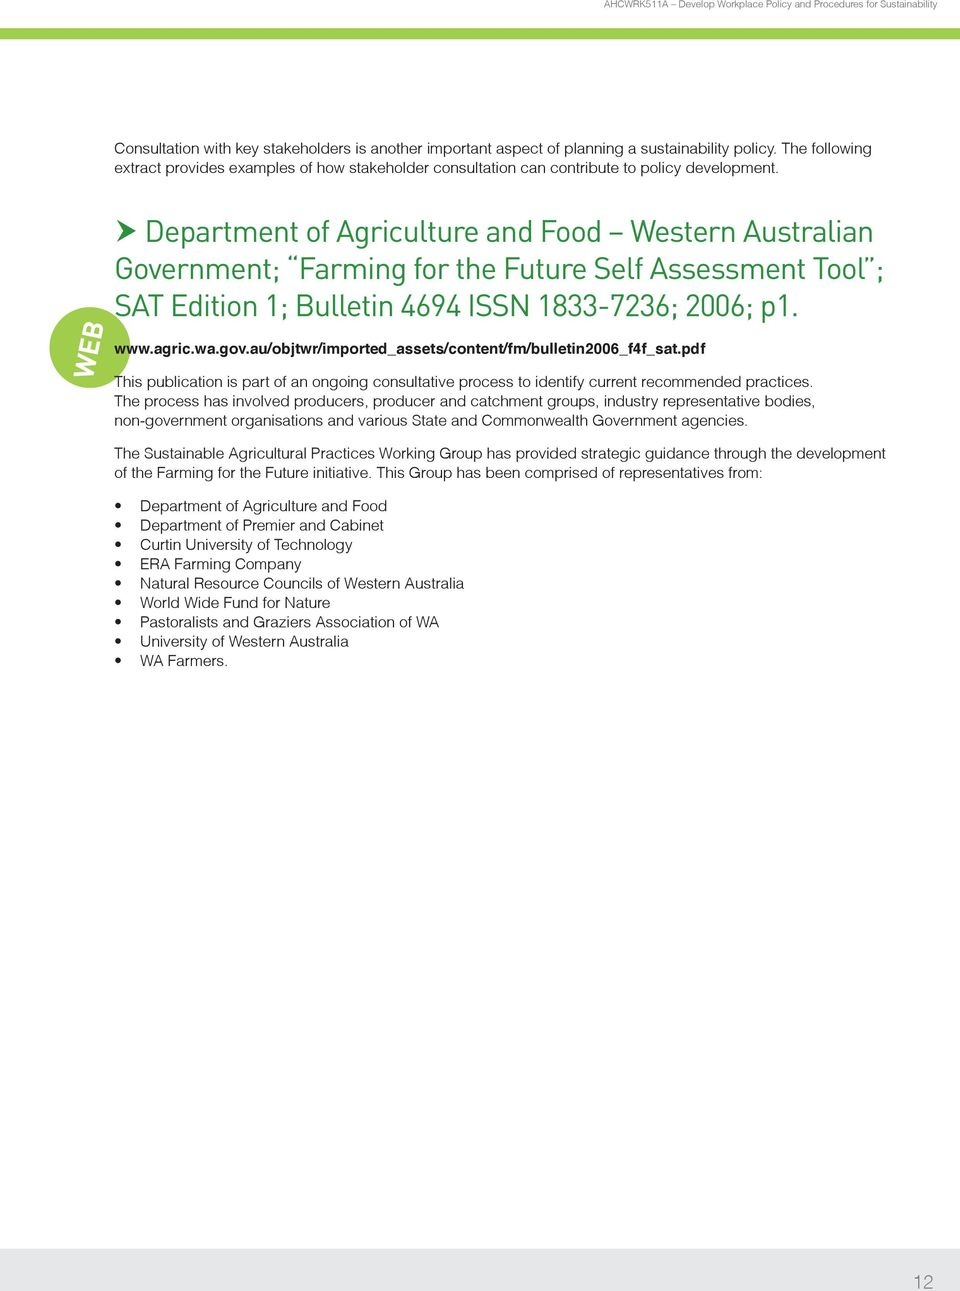 Department of Agriculture and Food Western Australian Government; Farming for the Future Self Assessment Tool ; SAT Edition 1; Bulletin 4694 ISSN 1833-7236; 2006; p1. www.agric.wa.gov.